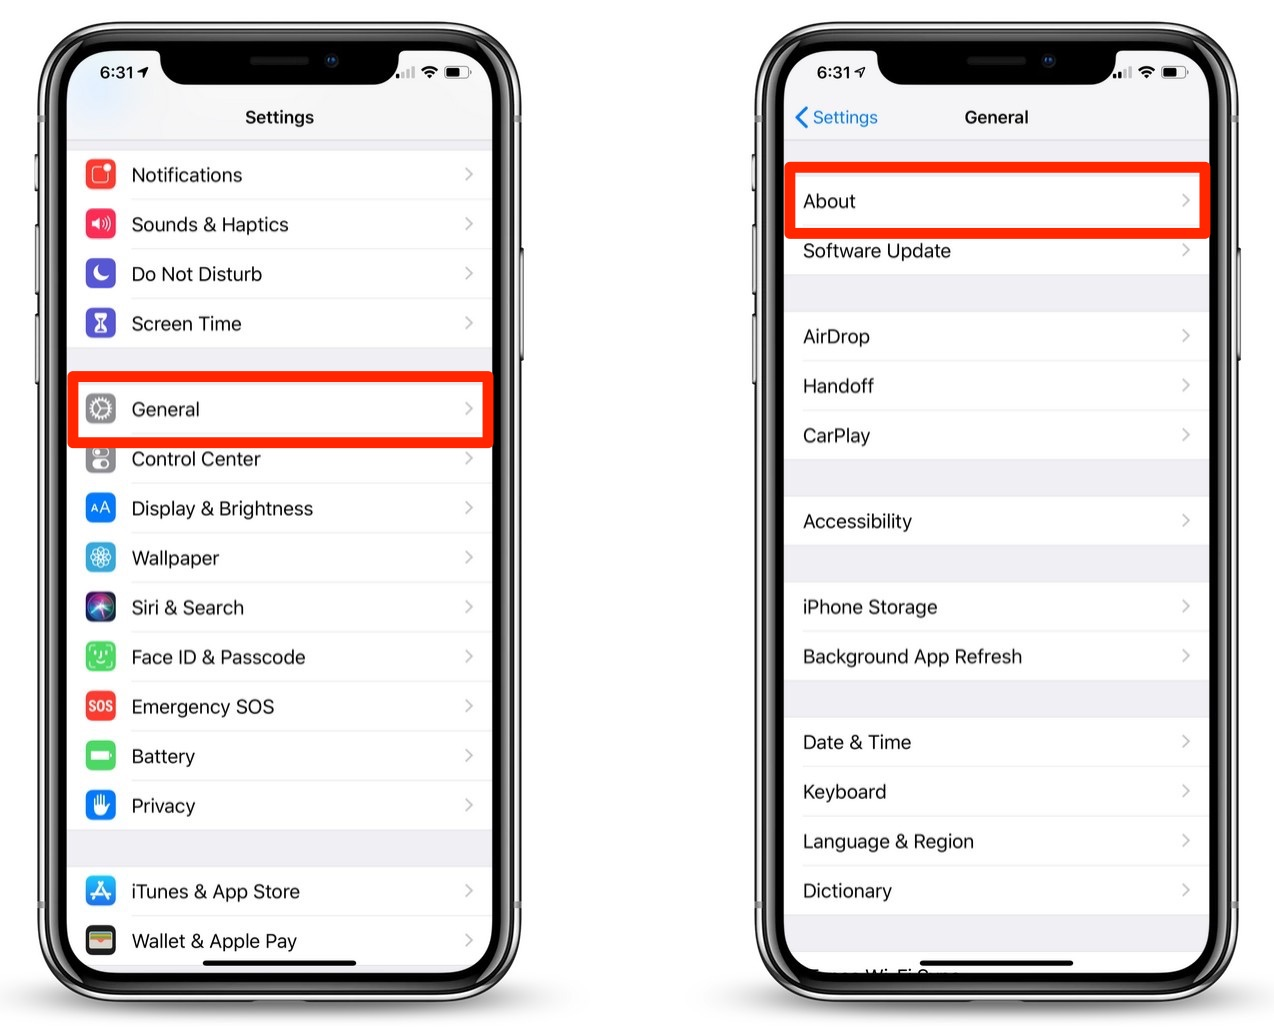 How To Change the Name of Your iPhone or iPad